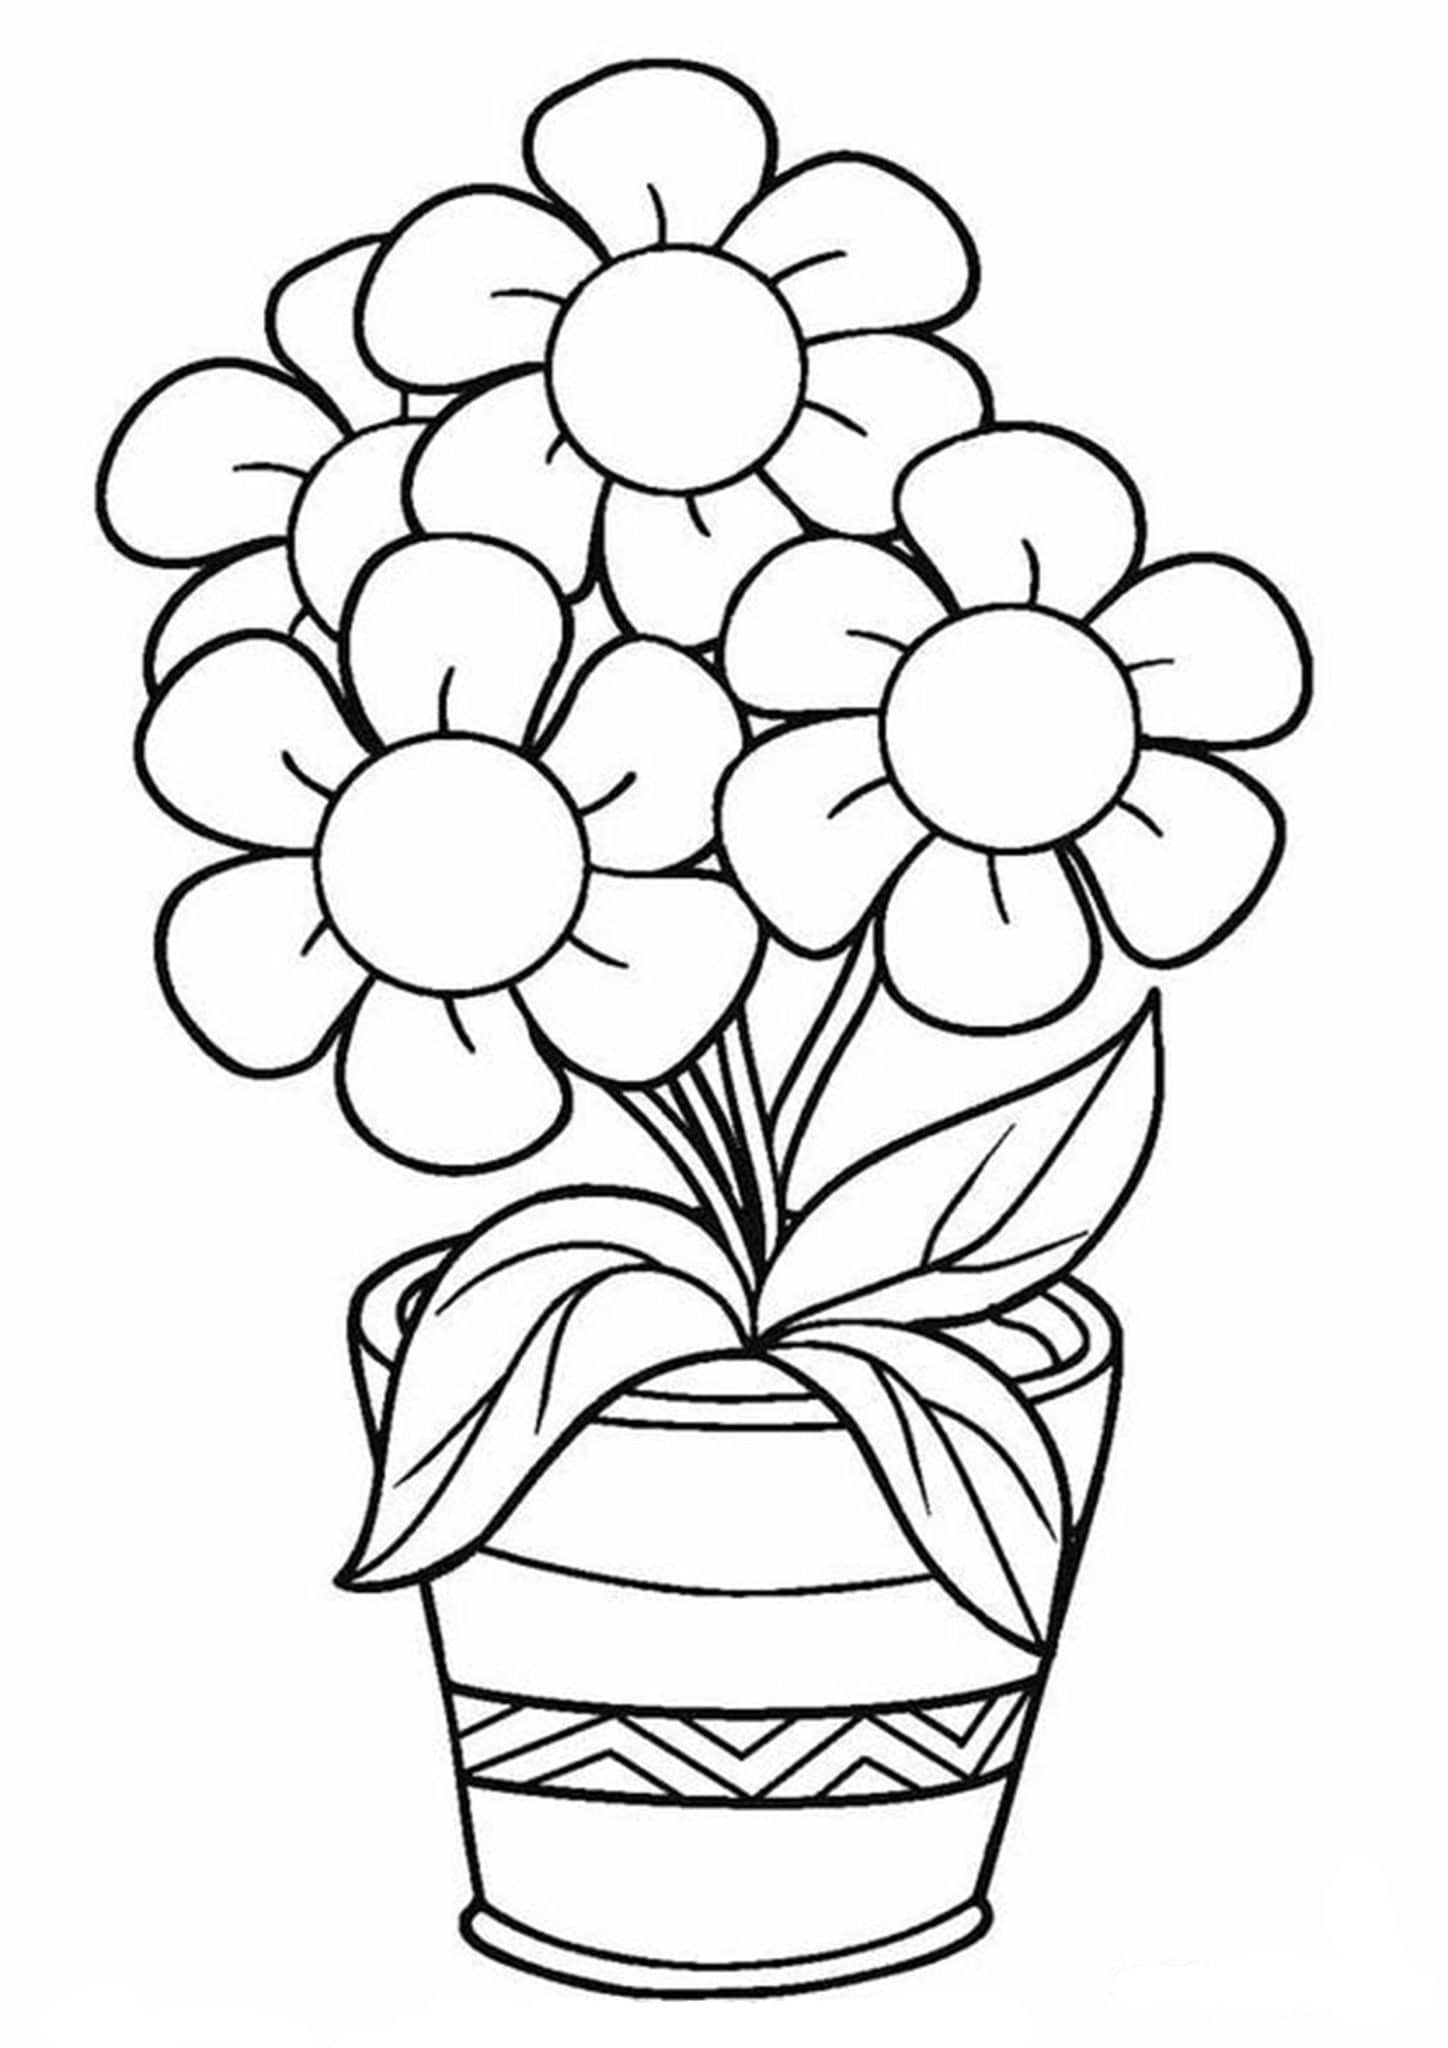 flower coloring pages for kids free printable flower coloring pages for kids best for pages kids coloring flower